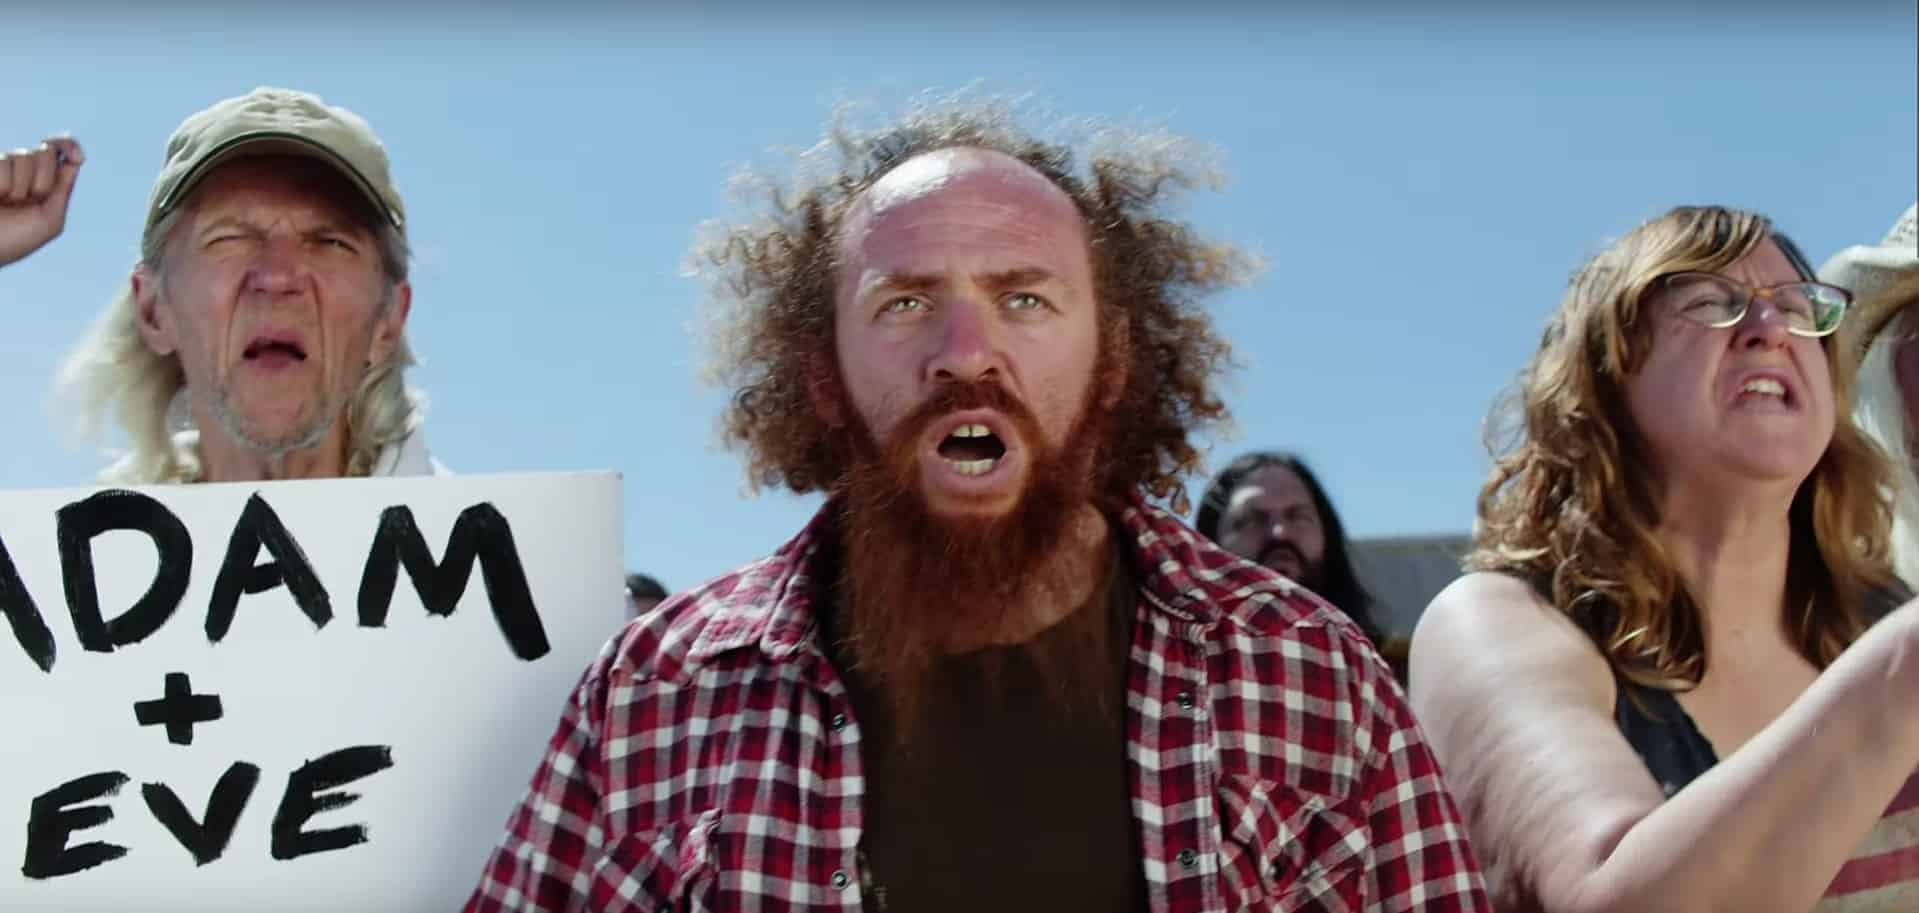 """Still from Taylor Swift's """"You Need to Calm Down"""" video. A red-haired man with a beard wearing a red plaid shirt over a black t-shirt takes part in an anti-LGBTQIA+ protest. Behind him, similarly dressed protesters hold signs and yell."""